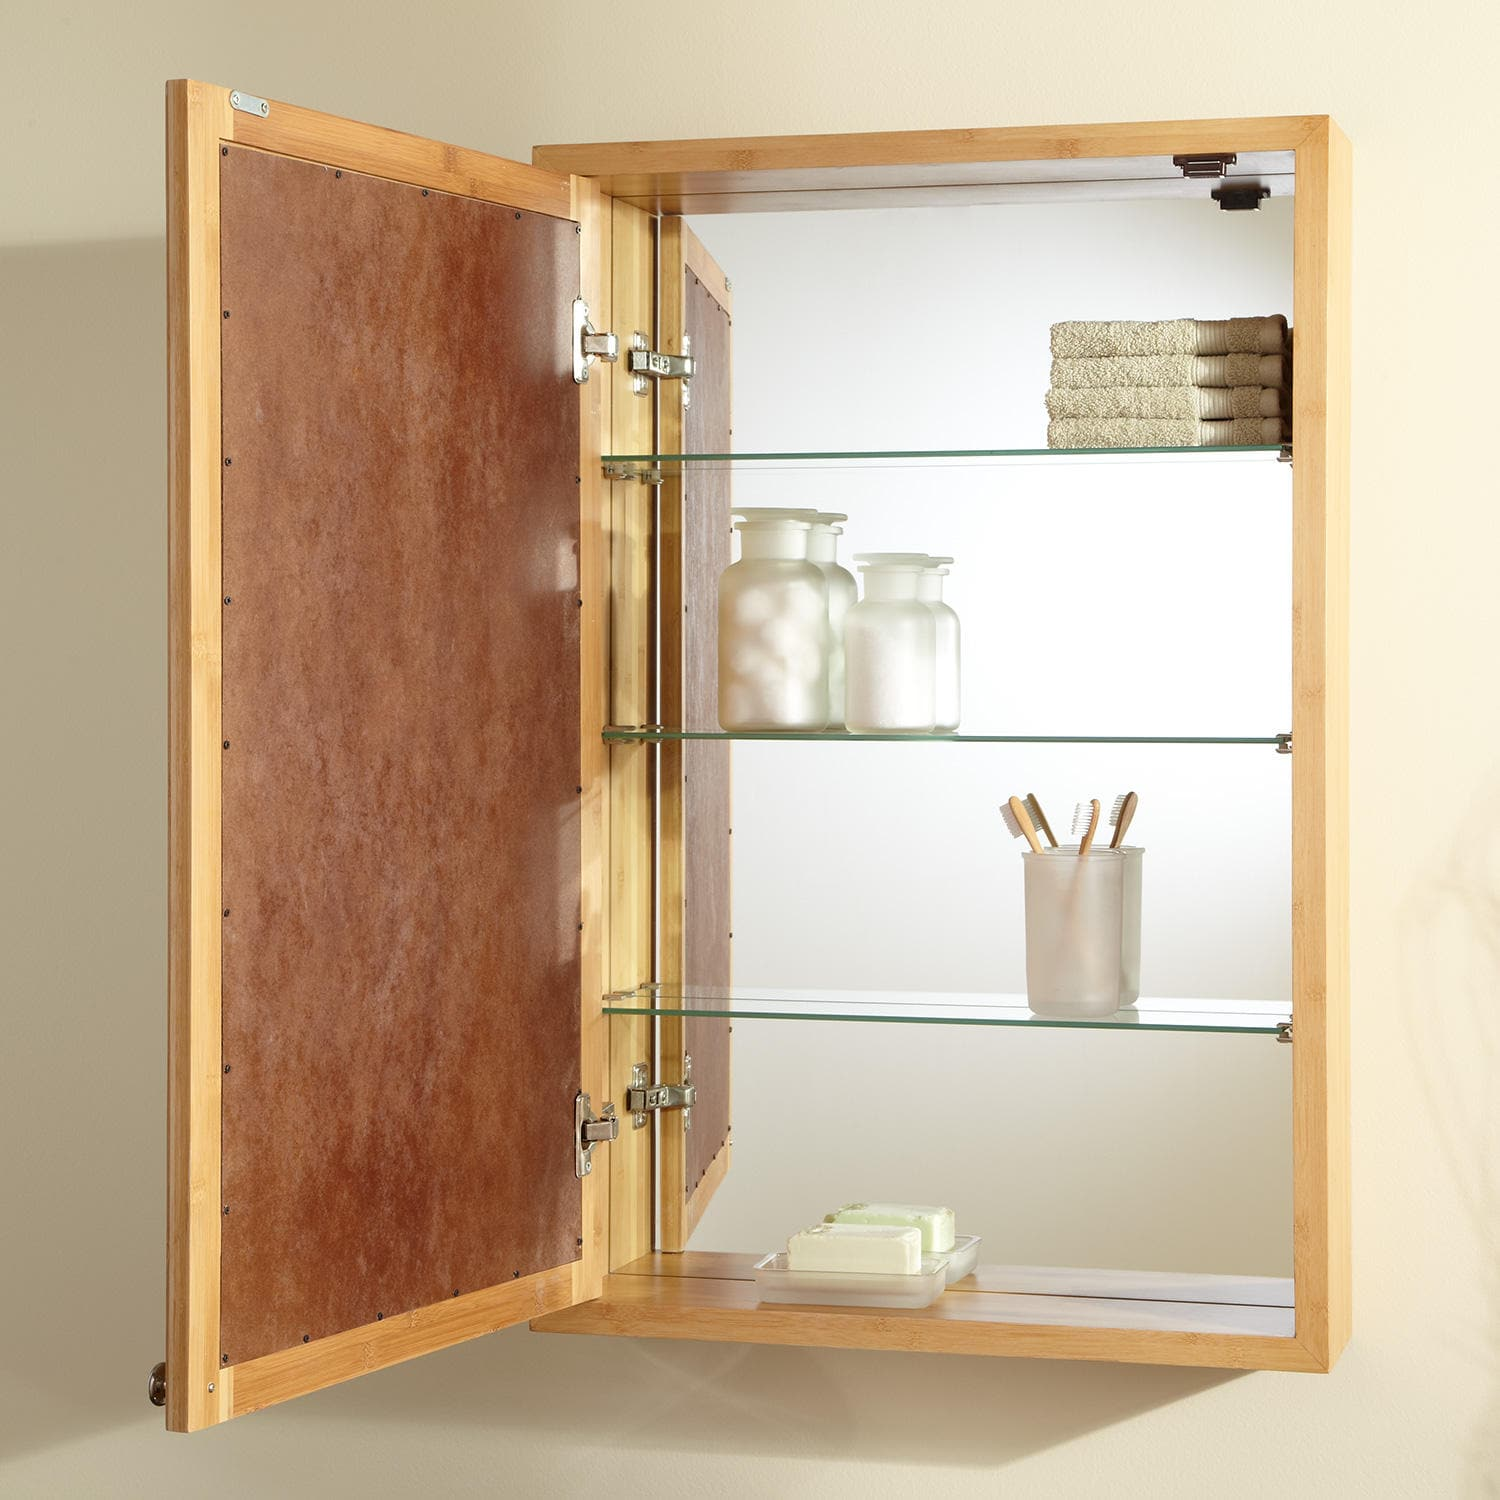 How To Build Wooden Medicine Cabinets – Loccie Better ...